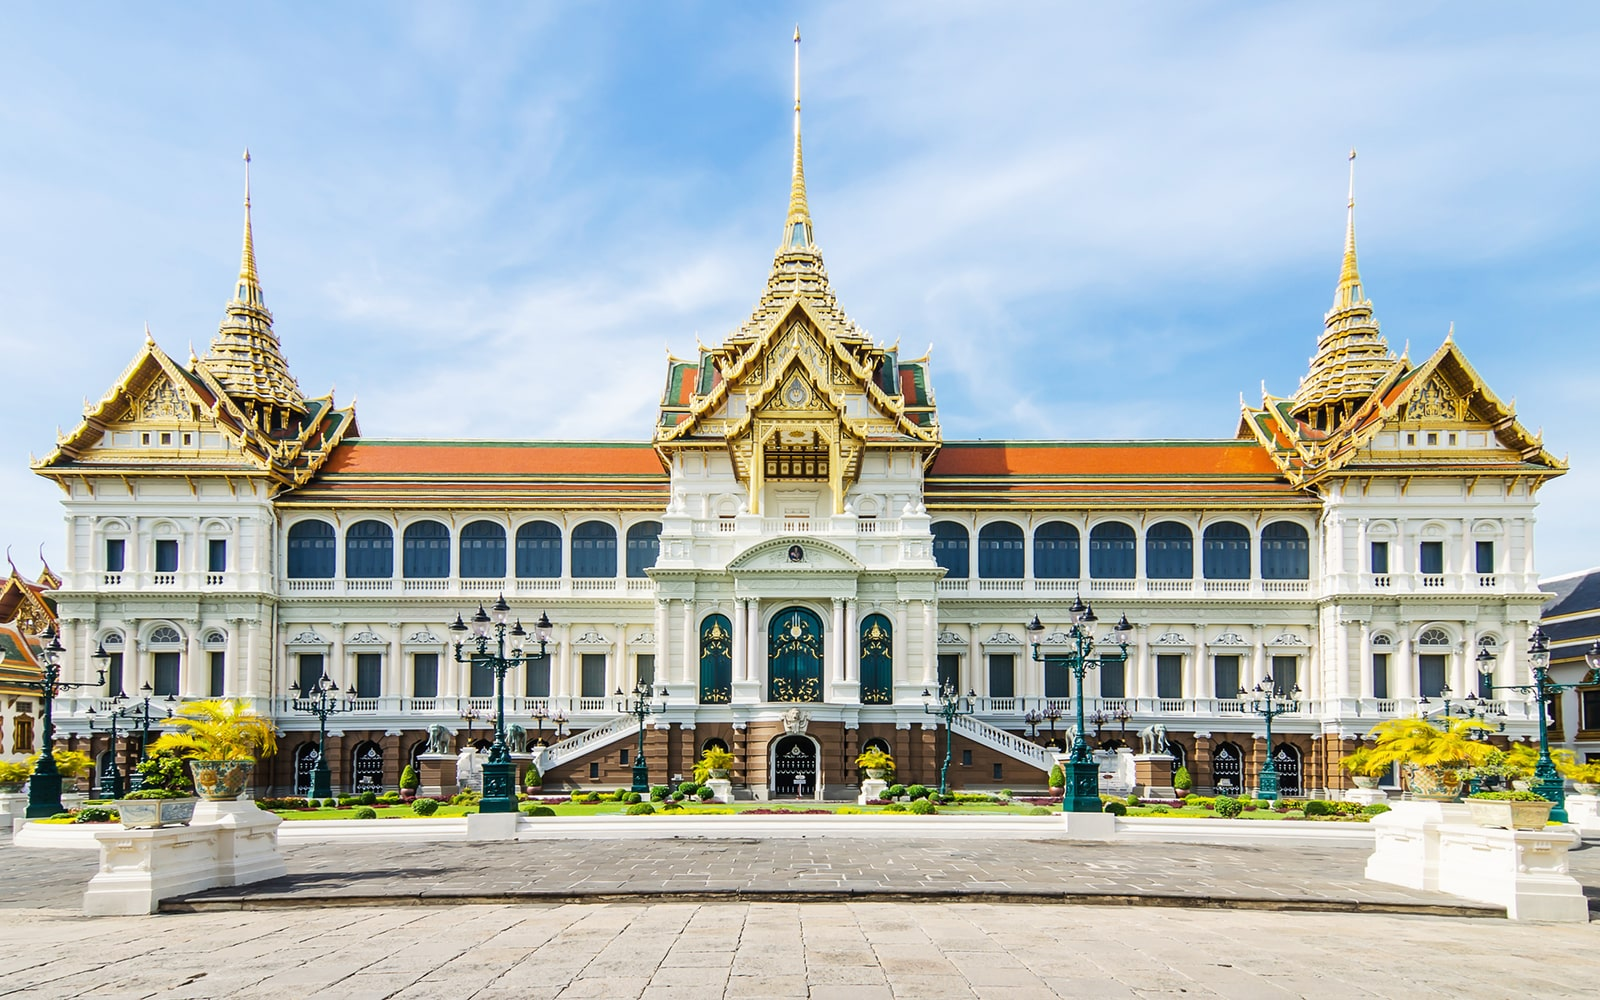 Full-day Bangkok City Tour from Laem Chabang Port